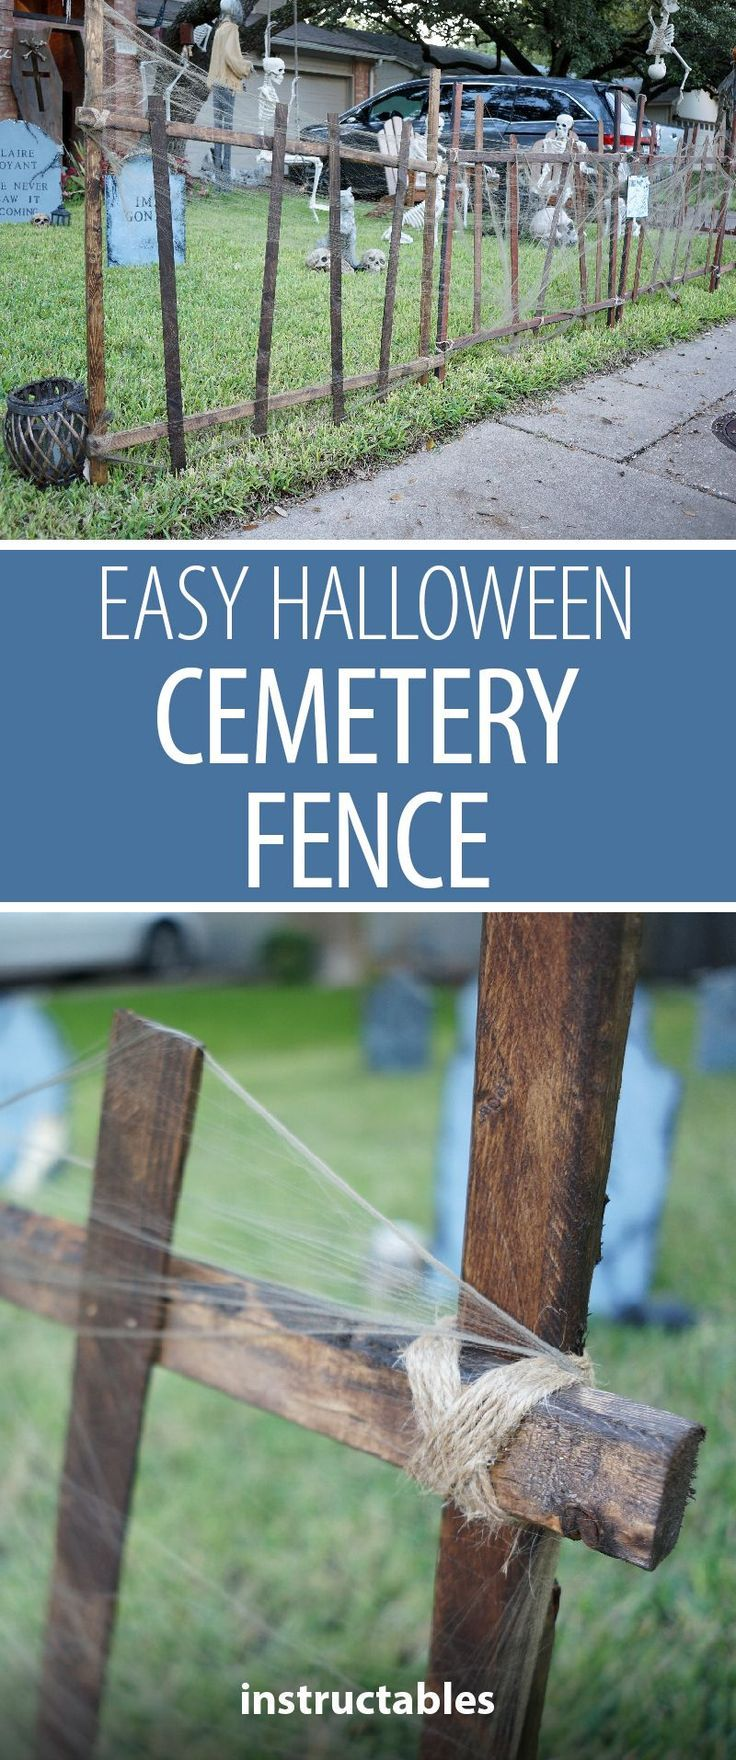 Easy Halloween Cemetery Fence  Halloween Decorations